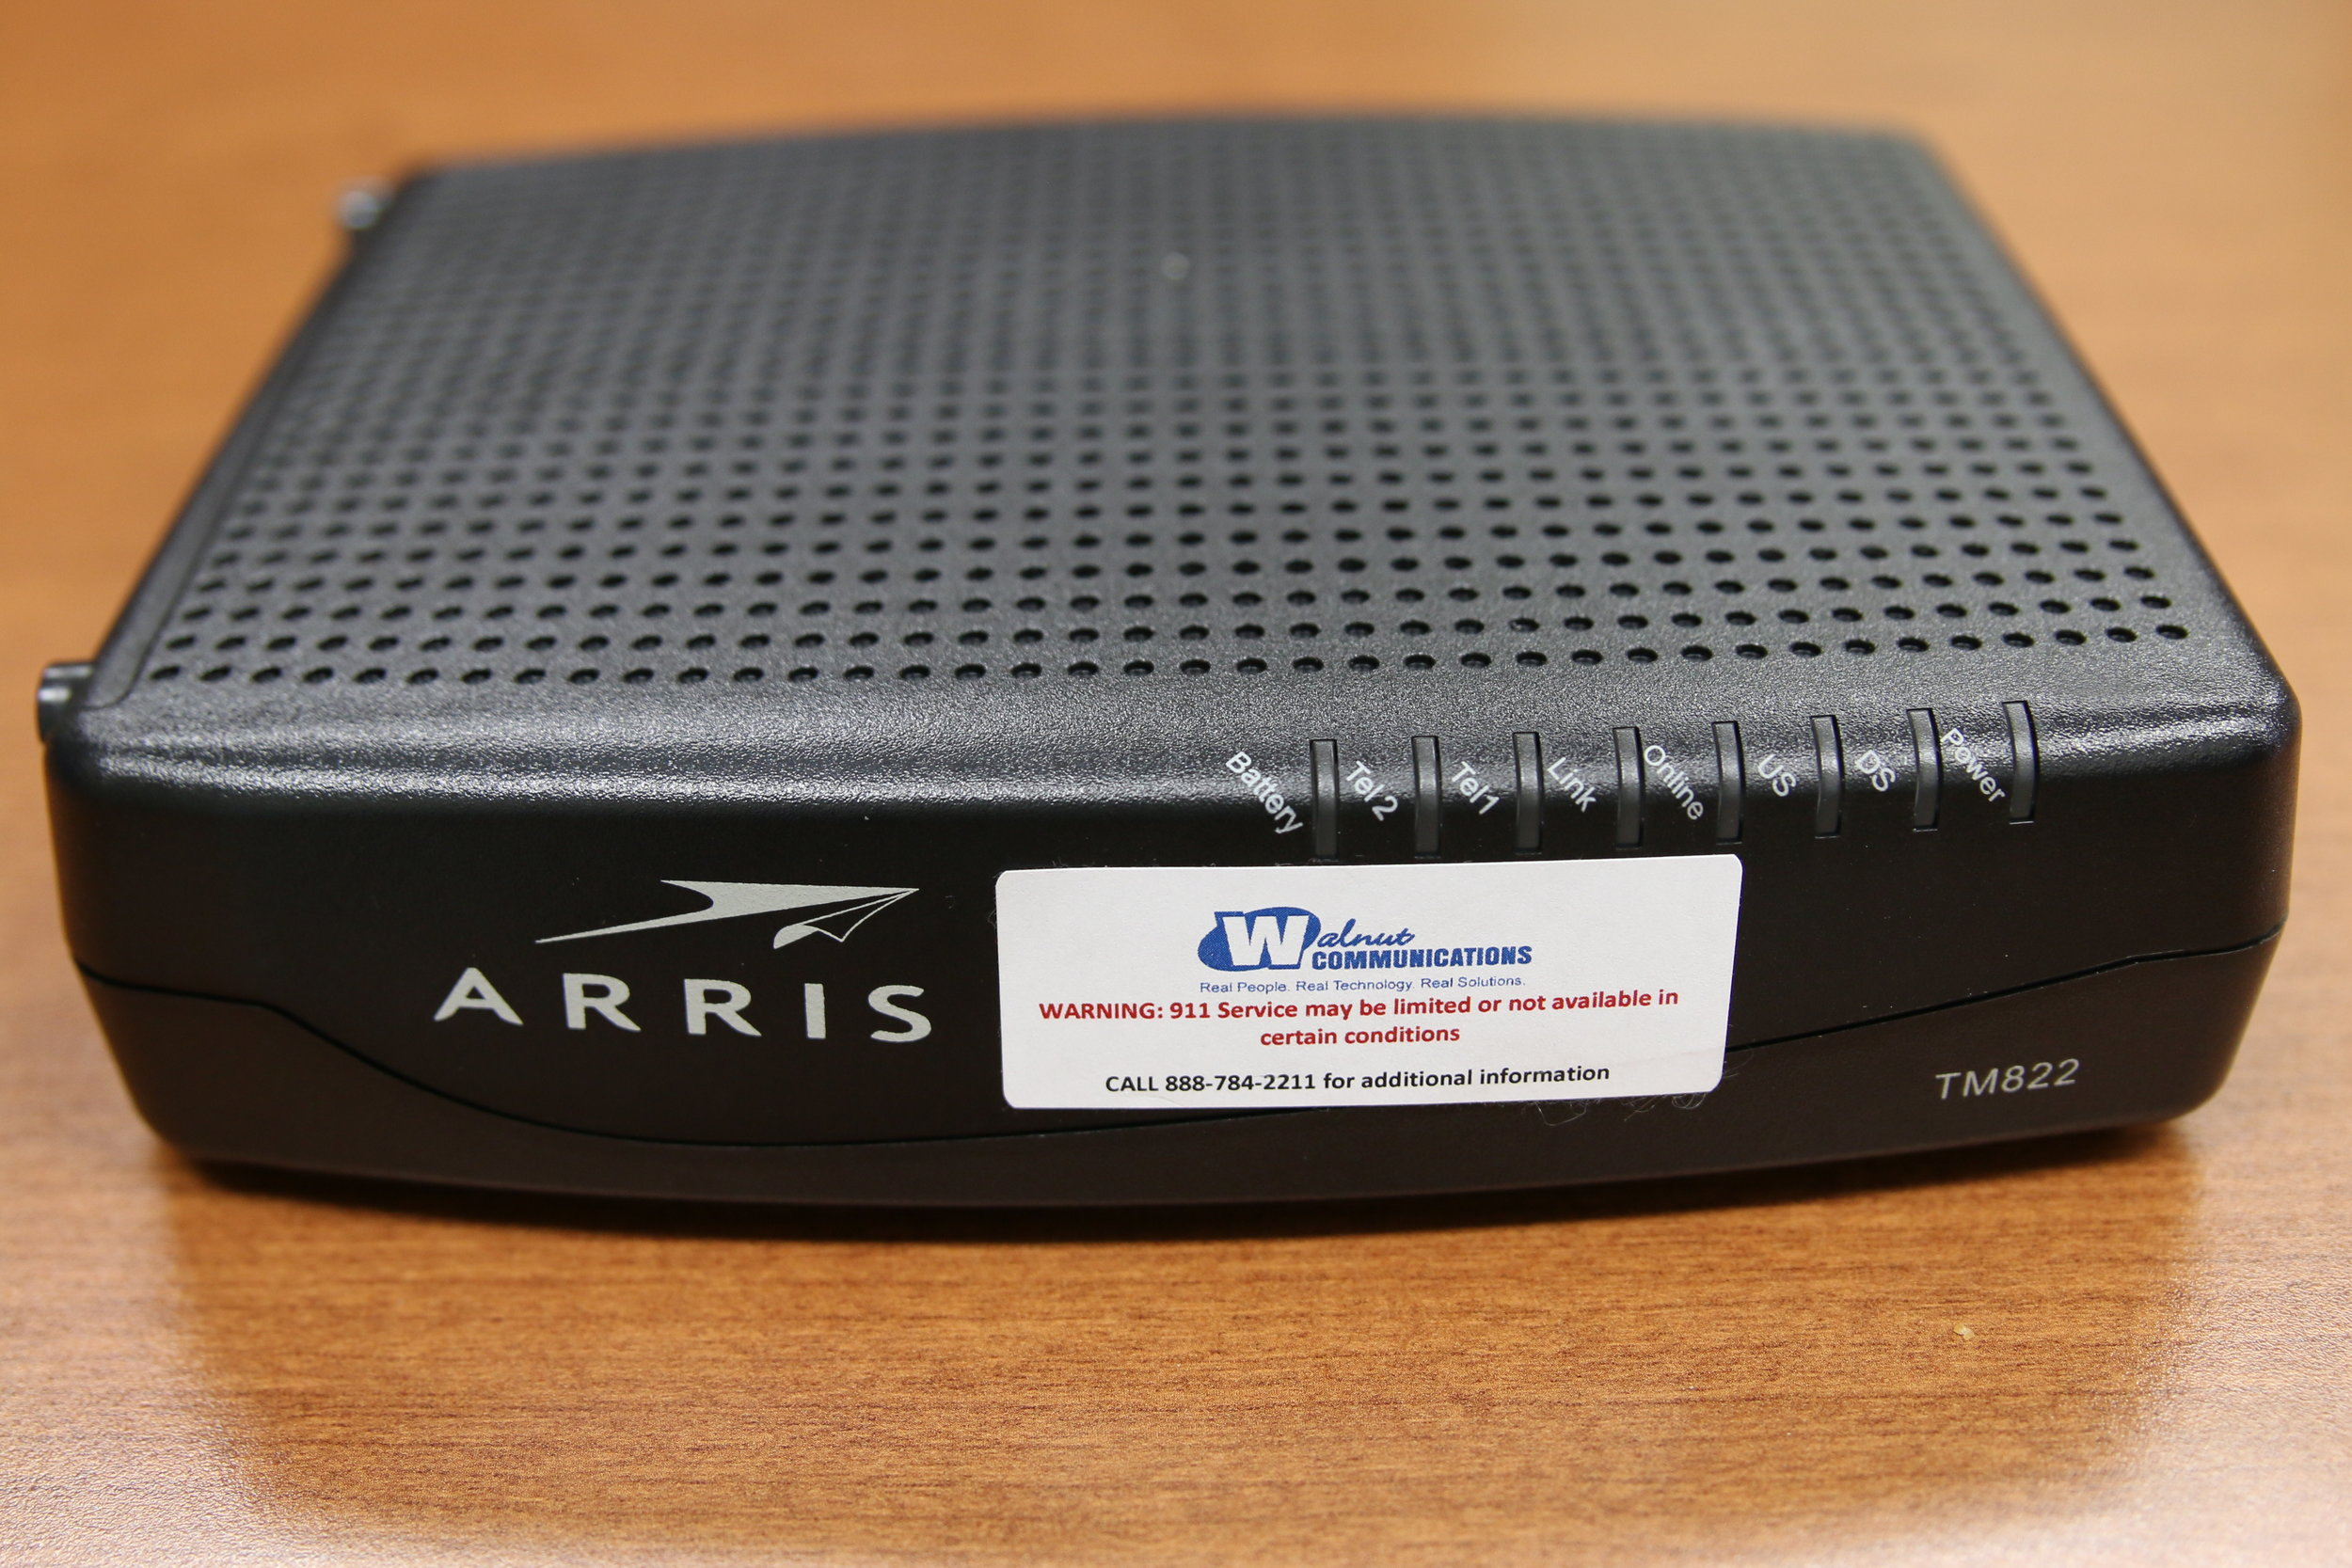 Cable Modem with Phone - front